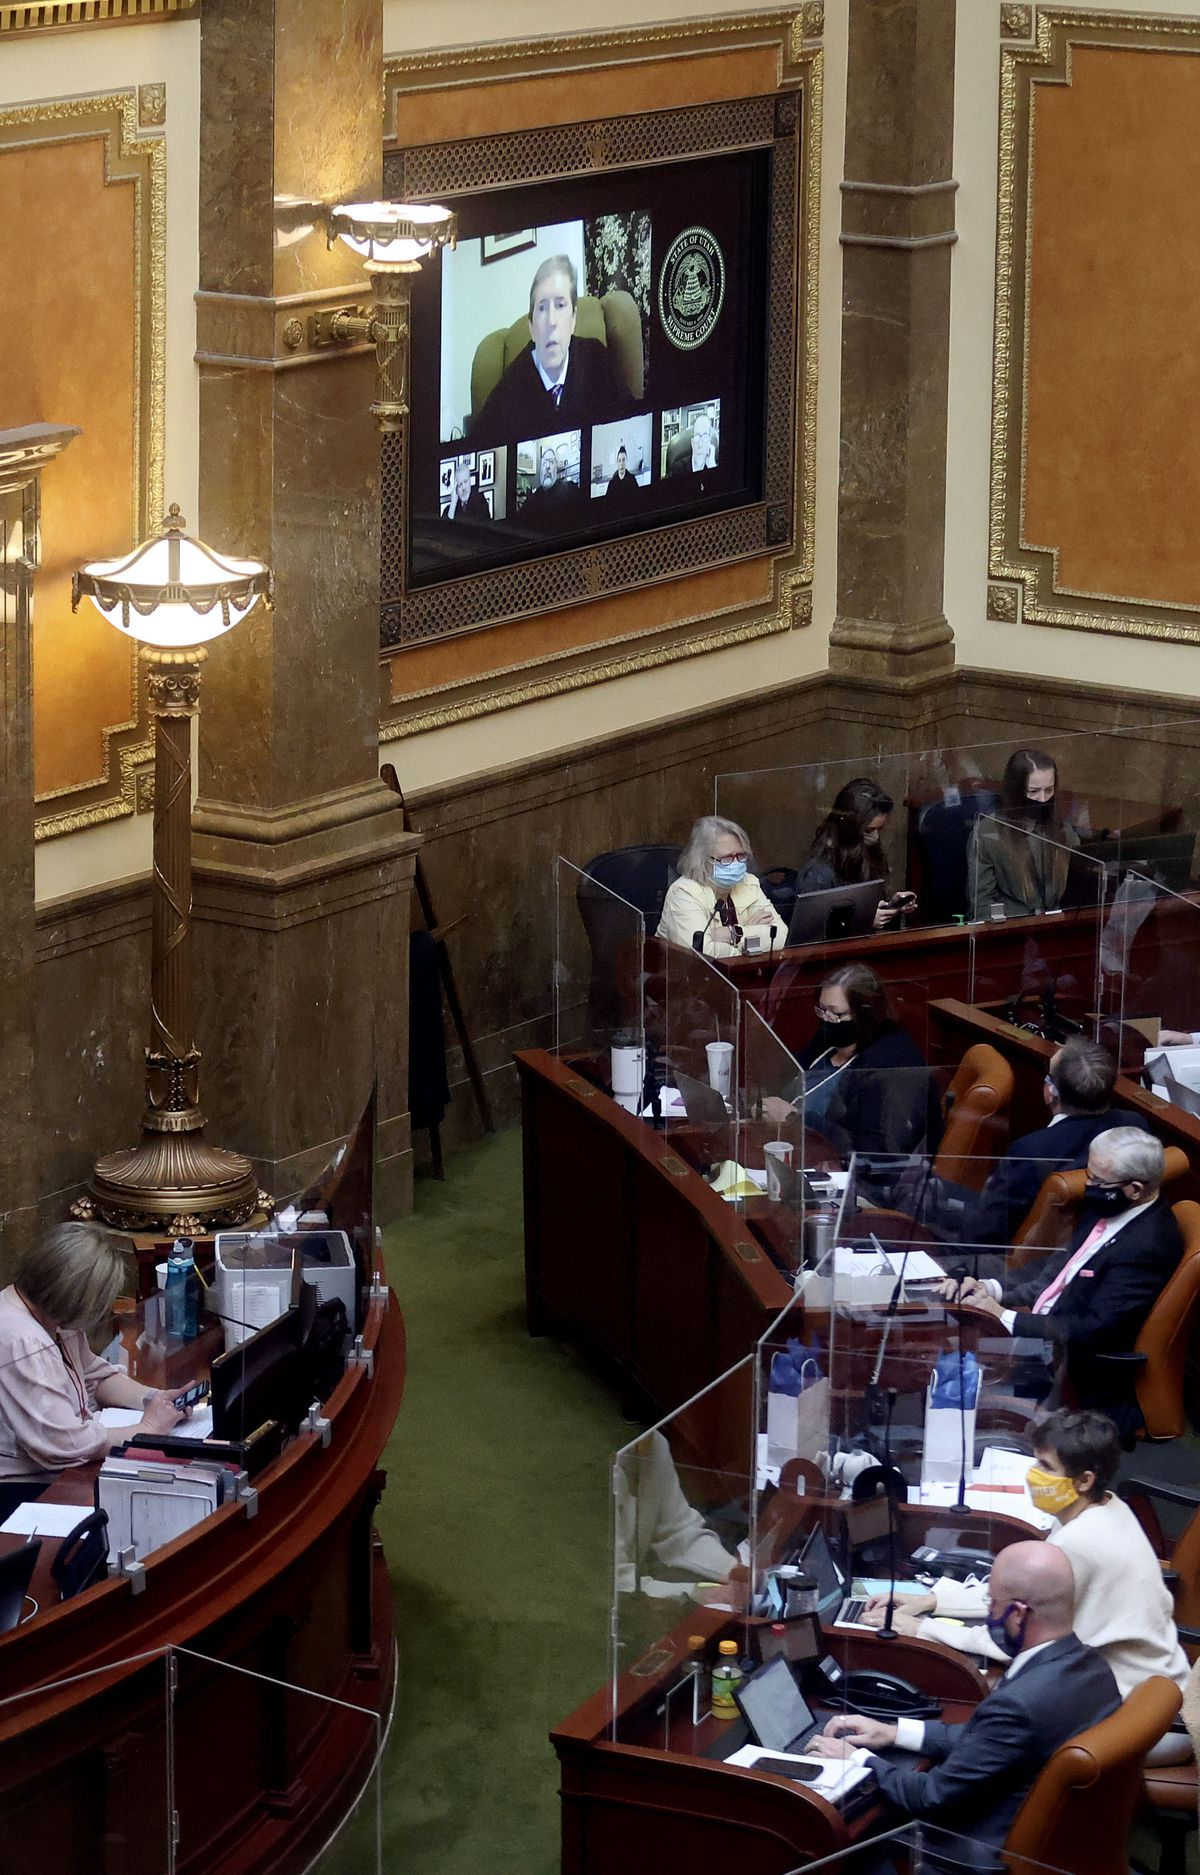 Utah Supreme Court Chief Justice Matthew B. Durrant gives the annual State of the Courts address via Zoom to members of the Utah House of Representatives on the first day of the Utah Legislature's 2021 general session in Salt Lake City on Tuesday, Jan. 19, 2021.